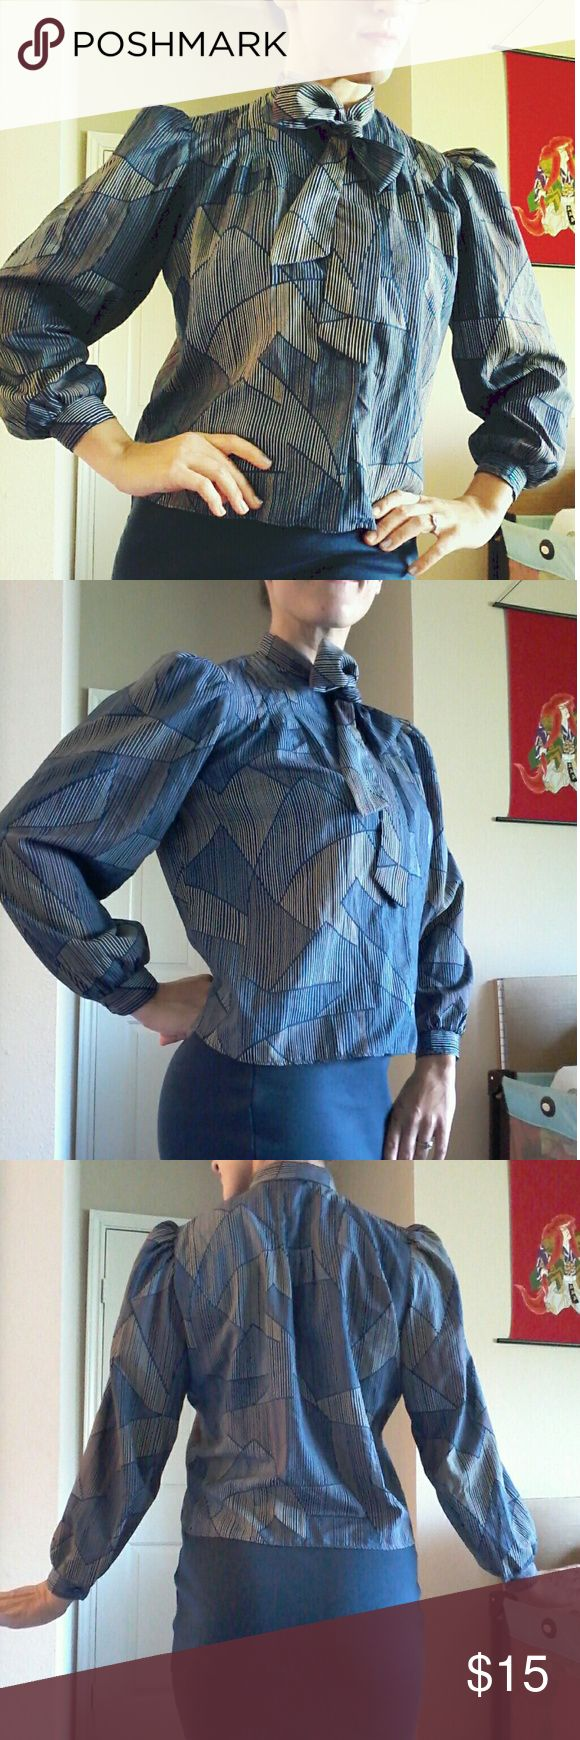 Poet Blouse This is a retro glam 60's girl dream! Puff sleeves, button up front and cuffs. Tie detail at neck. Cool blue mod design. Very lightweight! The tags are removed, so my best guesses are: cotton/poly blend, size small. I am a size 4 for reference. EUC. Tops Button Down Shirts